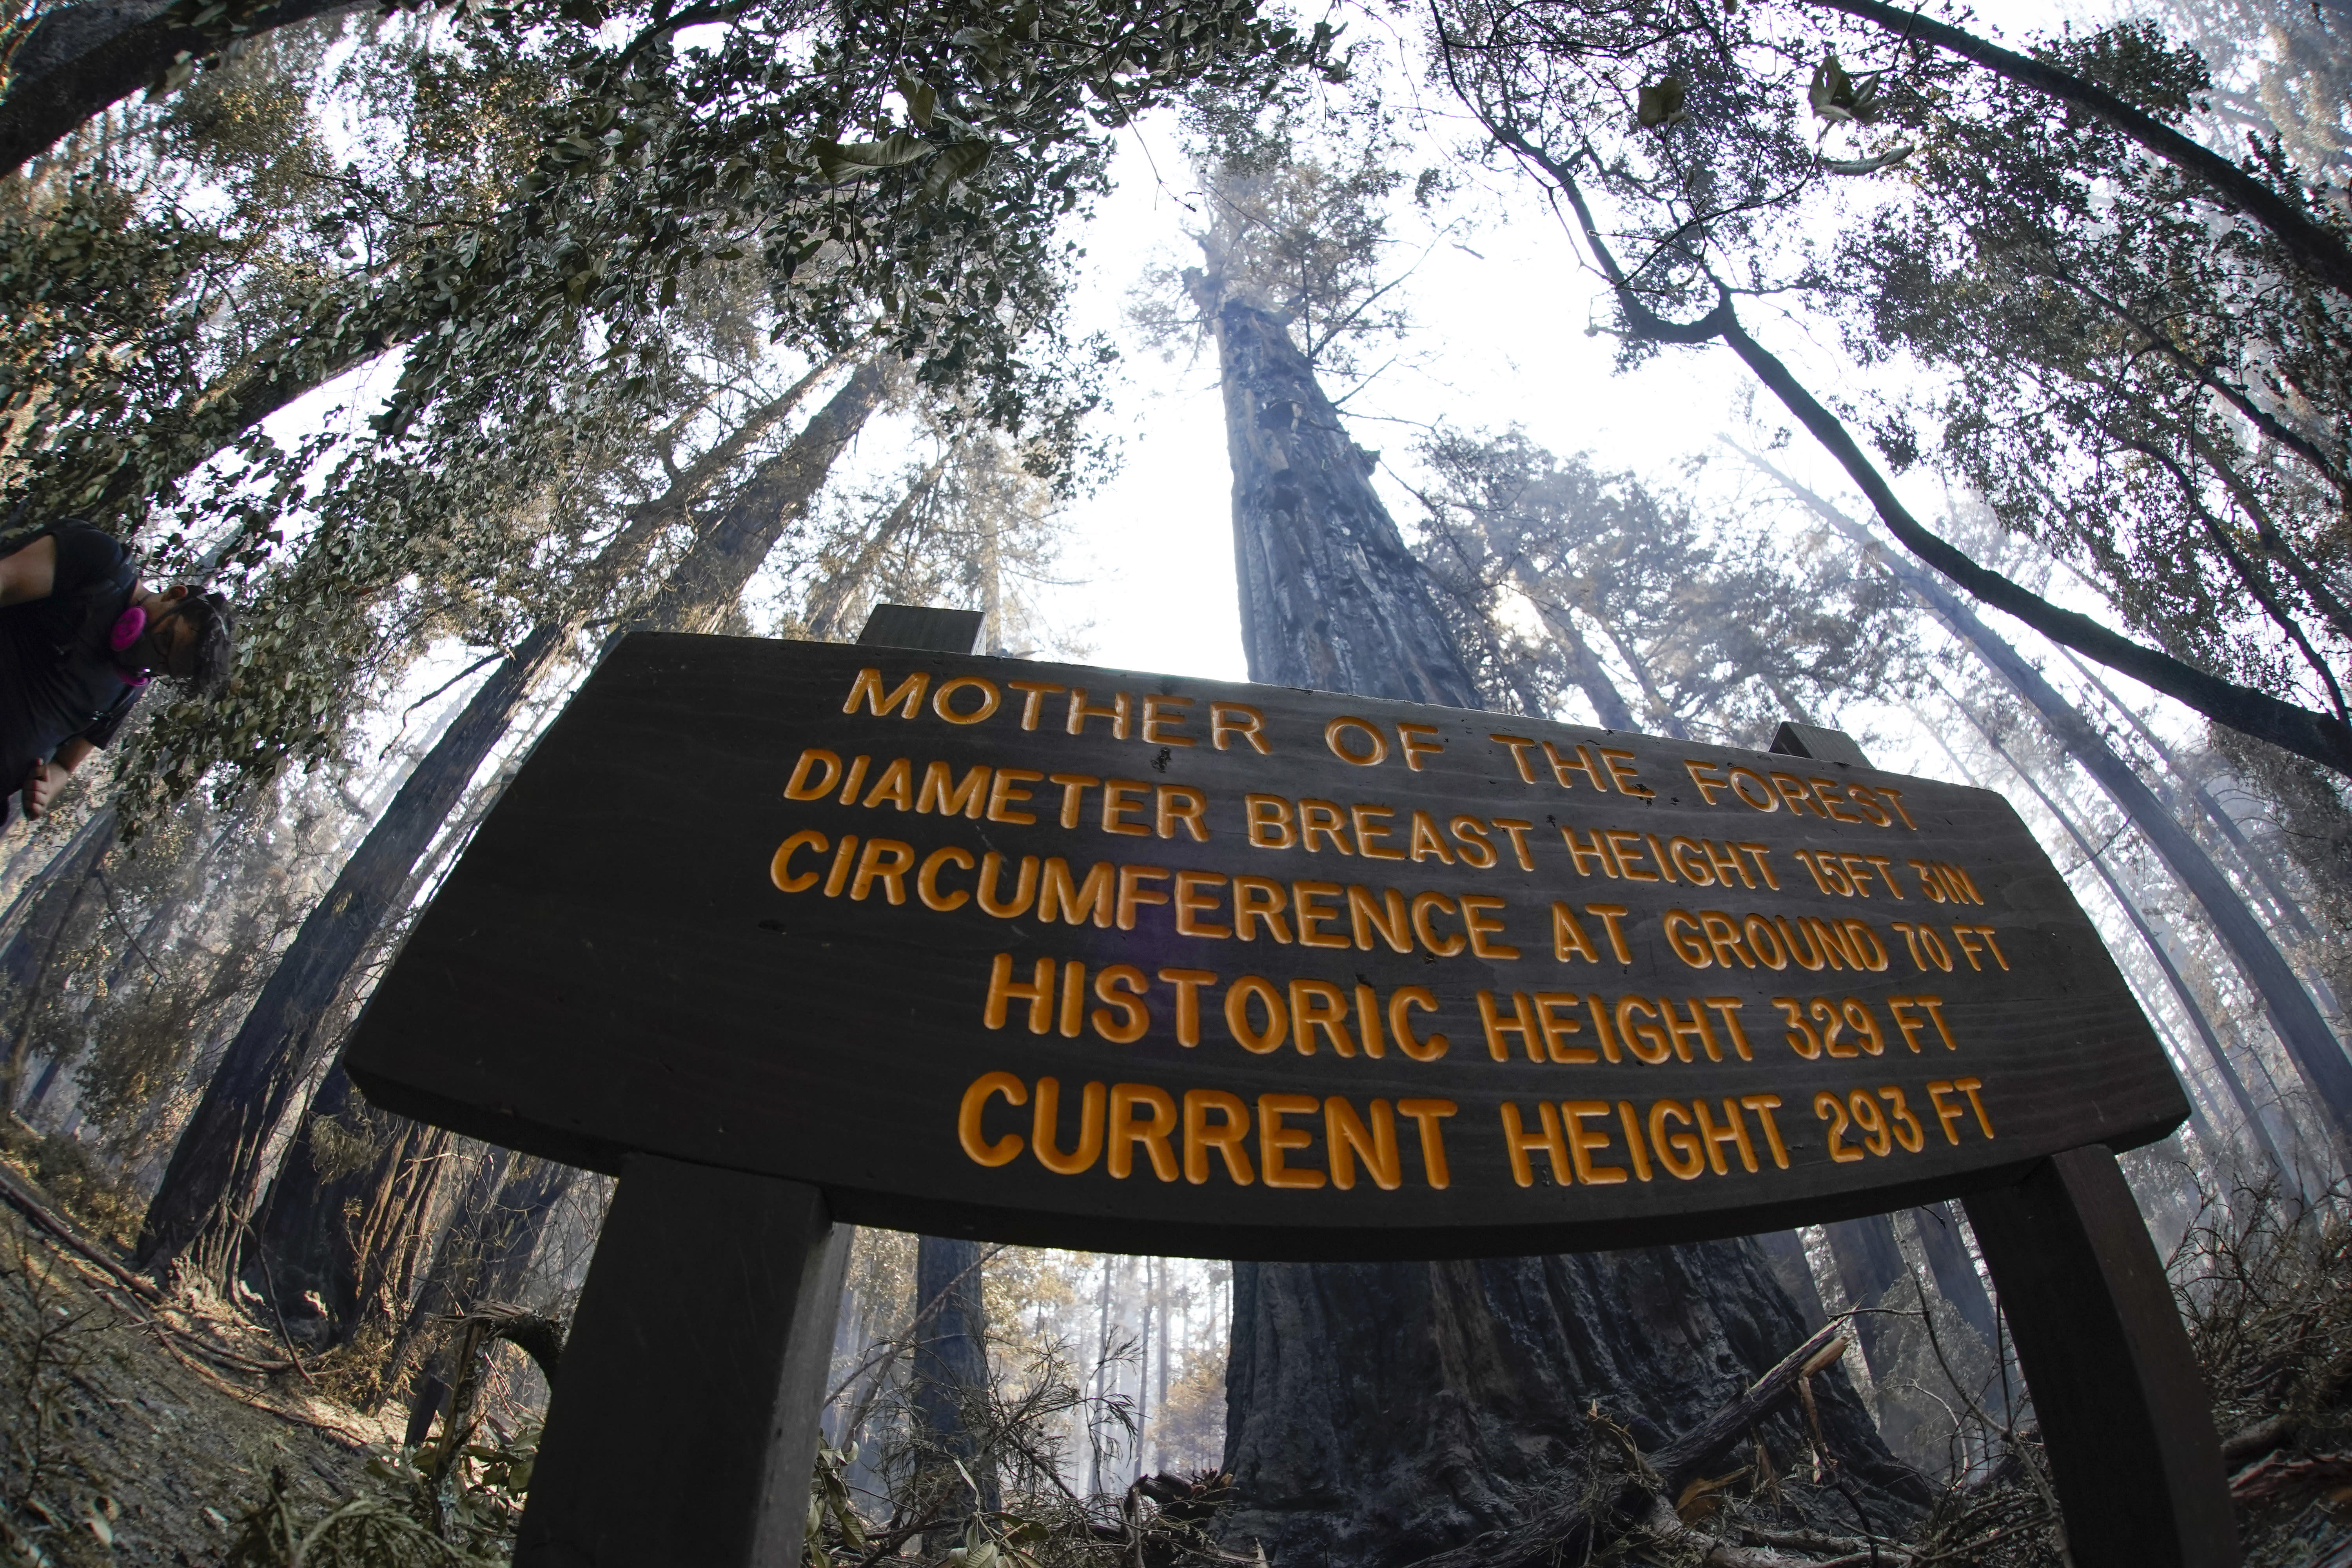 """An old-growth redwood tree named """"Mother of the Forest"""" is still standing in Big Basin Redwoods State Park, Calif., Monday, Aug. 24, 2020. The CZU Lightning Complex wildfire tore through the park but most of the redwoods, some as old as 2,000 years, were still standing. (AP Photo/Marcio Jose Sanchez)"""